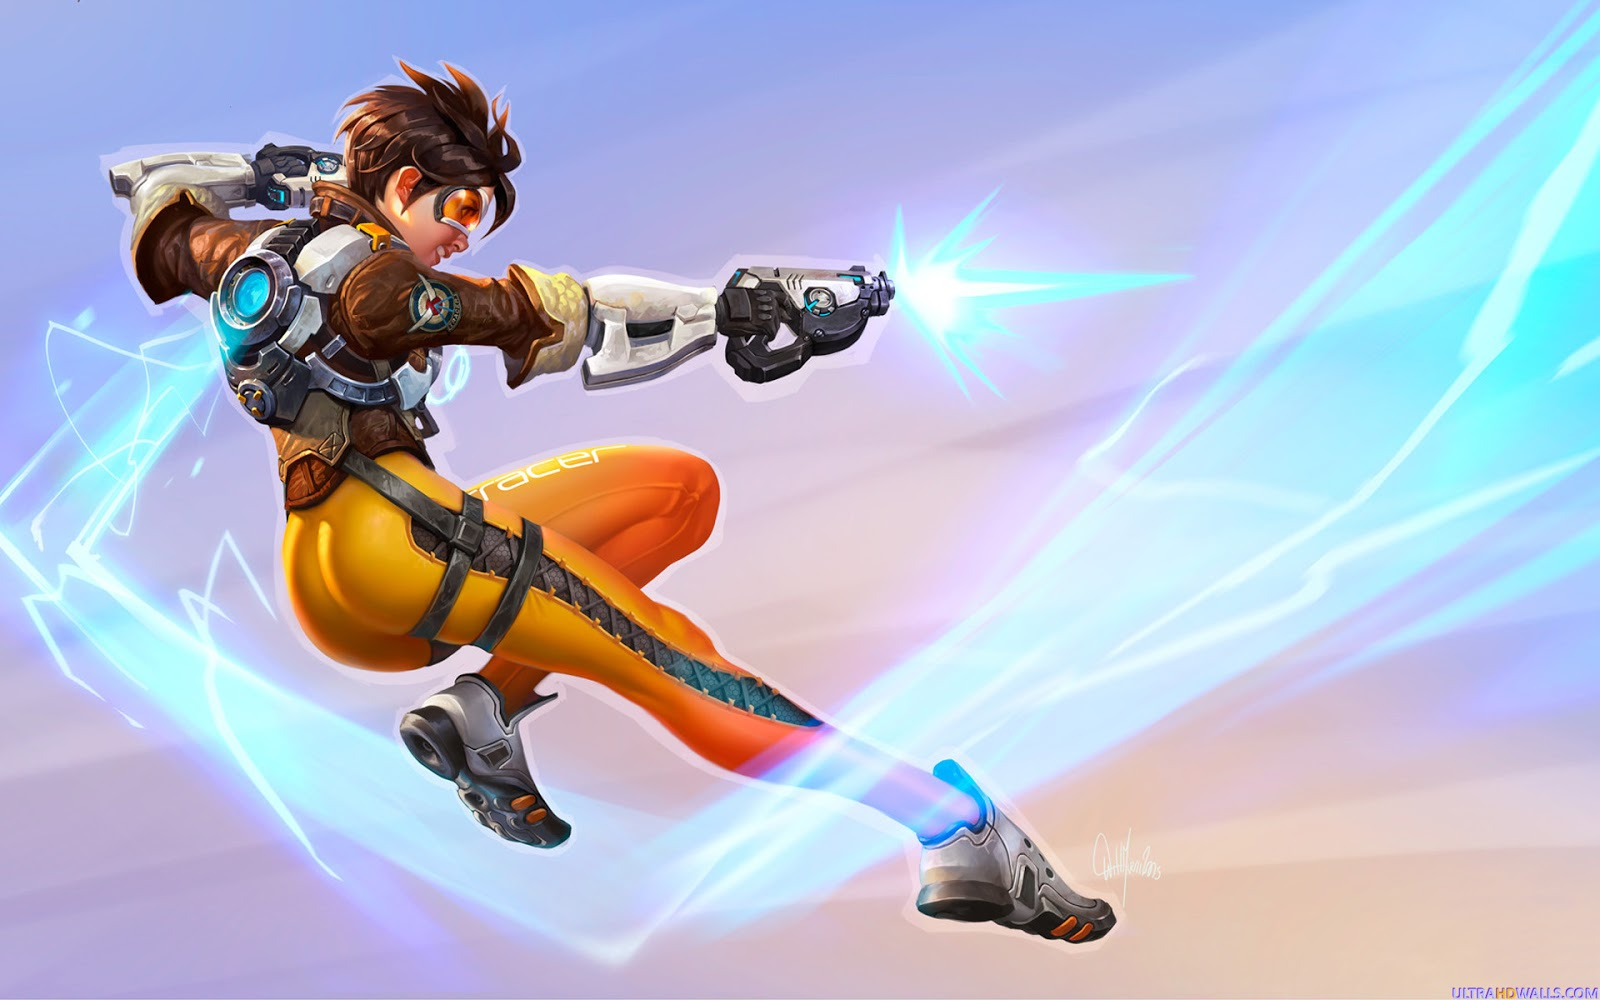 Overwatch Game HD Wallpapers | Games Wallpapers